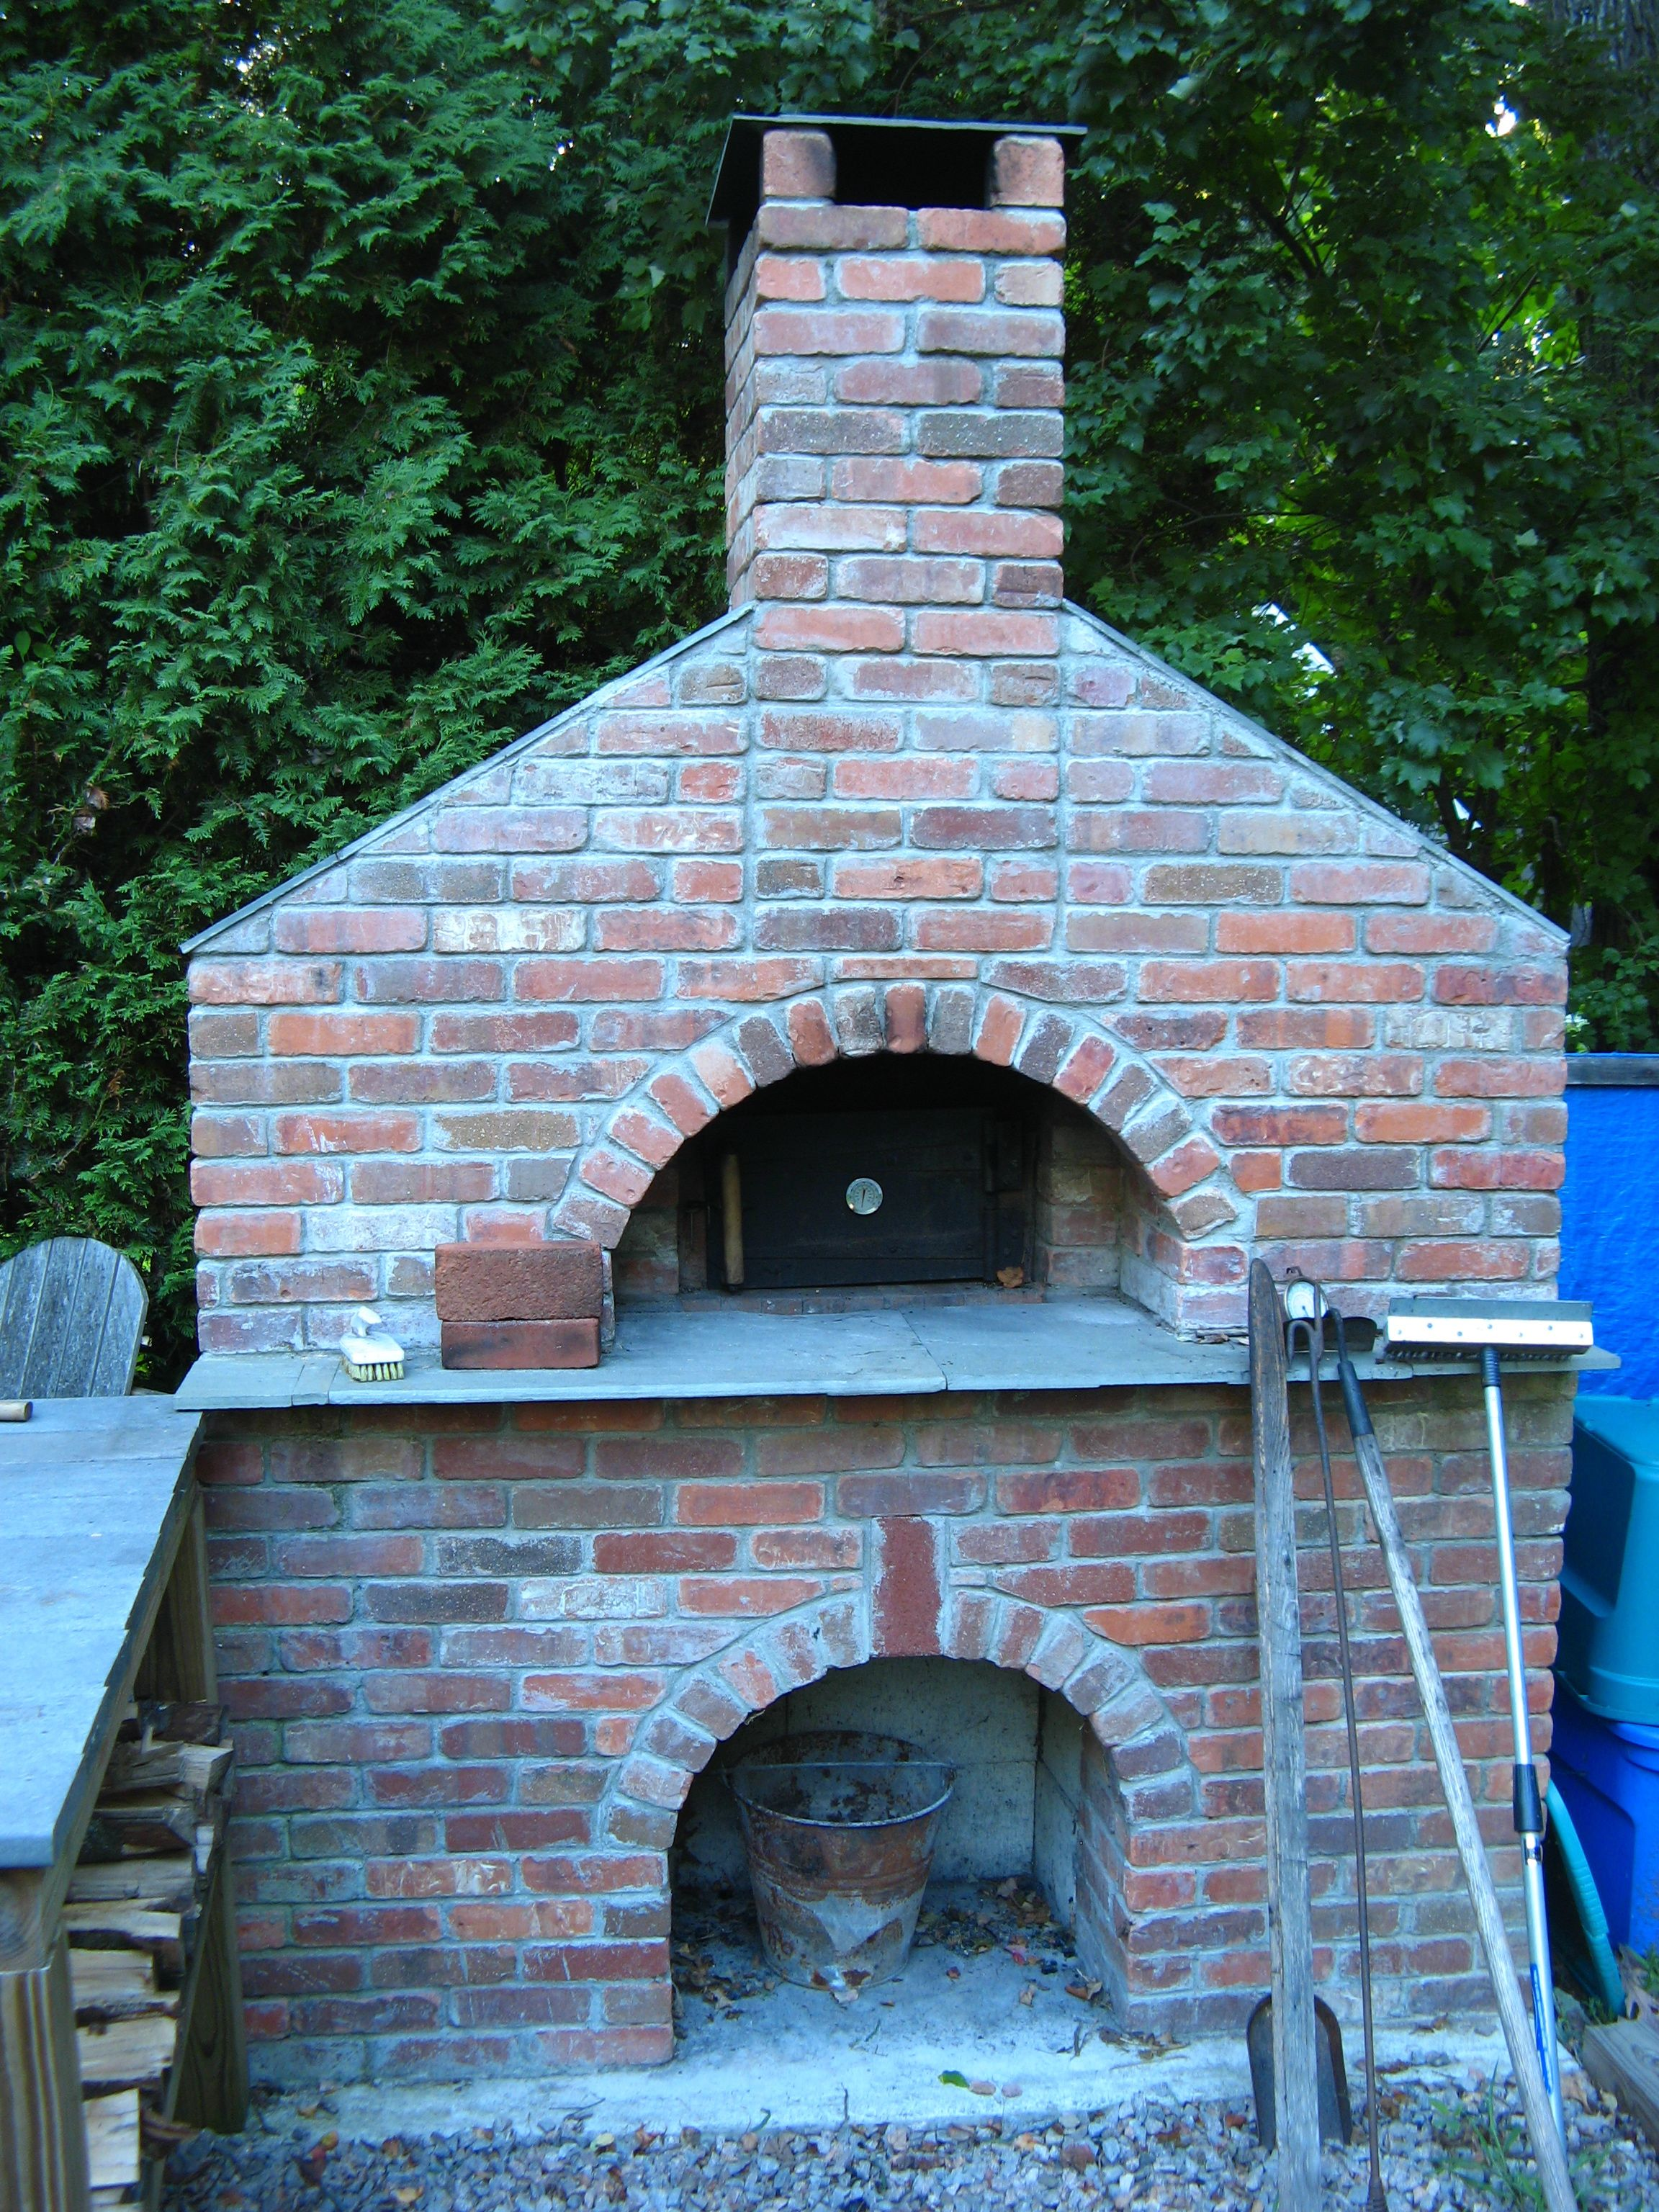 The oven my FIL built in his backyard. Plans from Forno Bravo ...